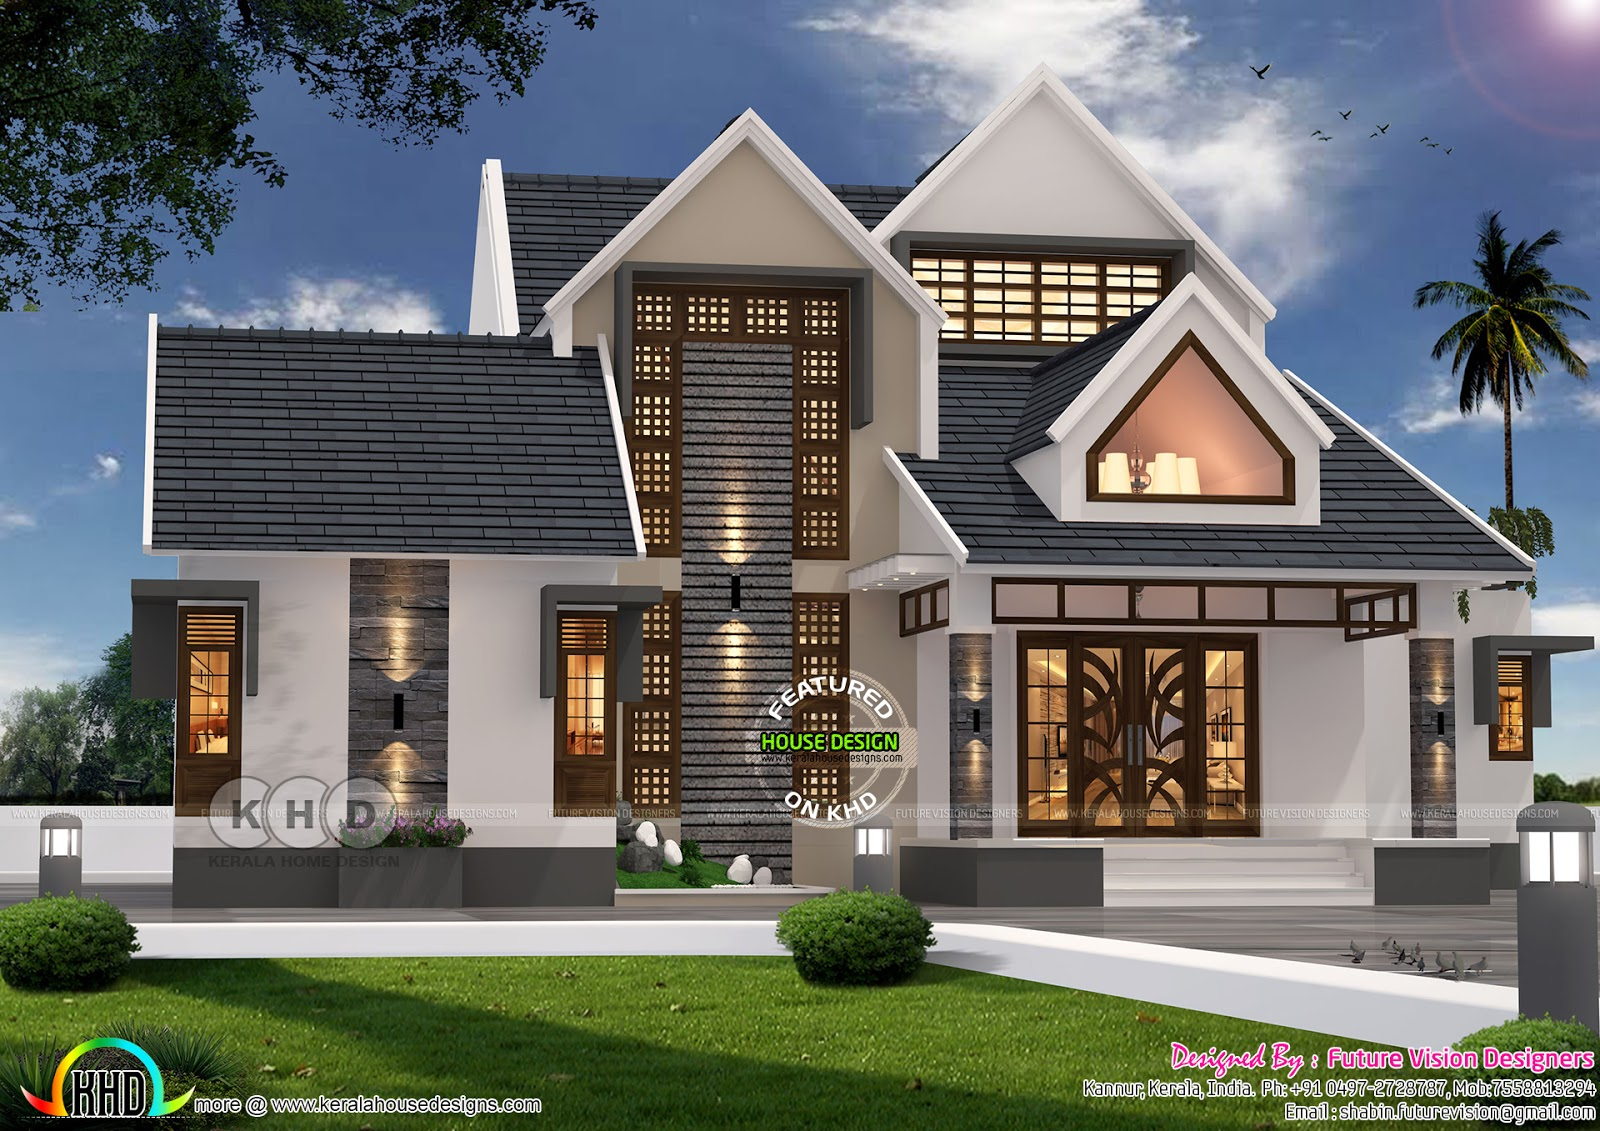 2541 square feet sloping roof house plan kerala home design and rh keralahousedesigns com